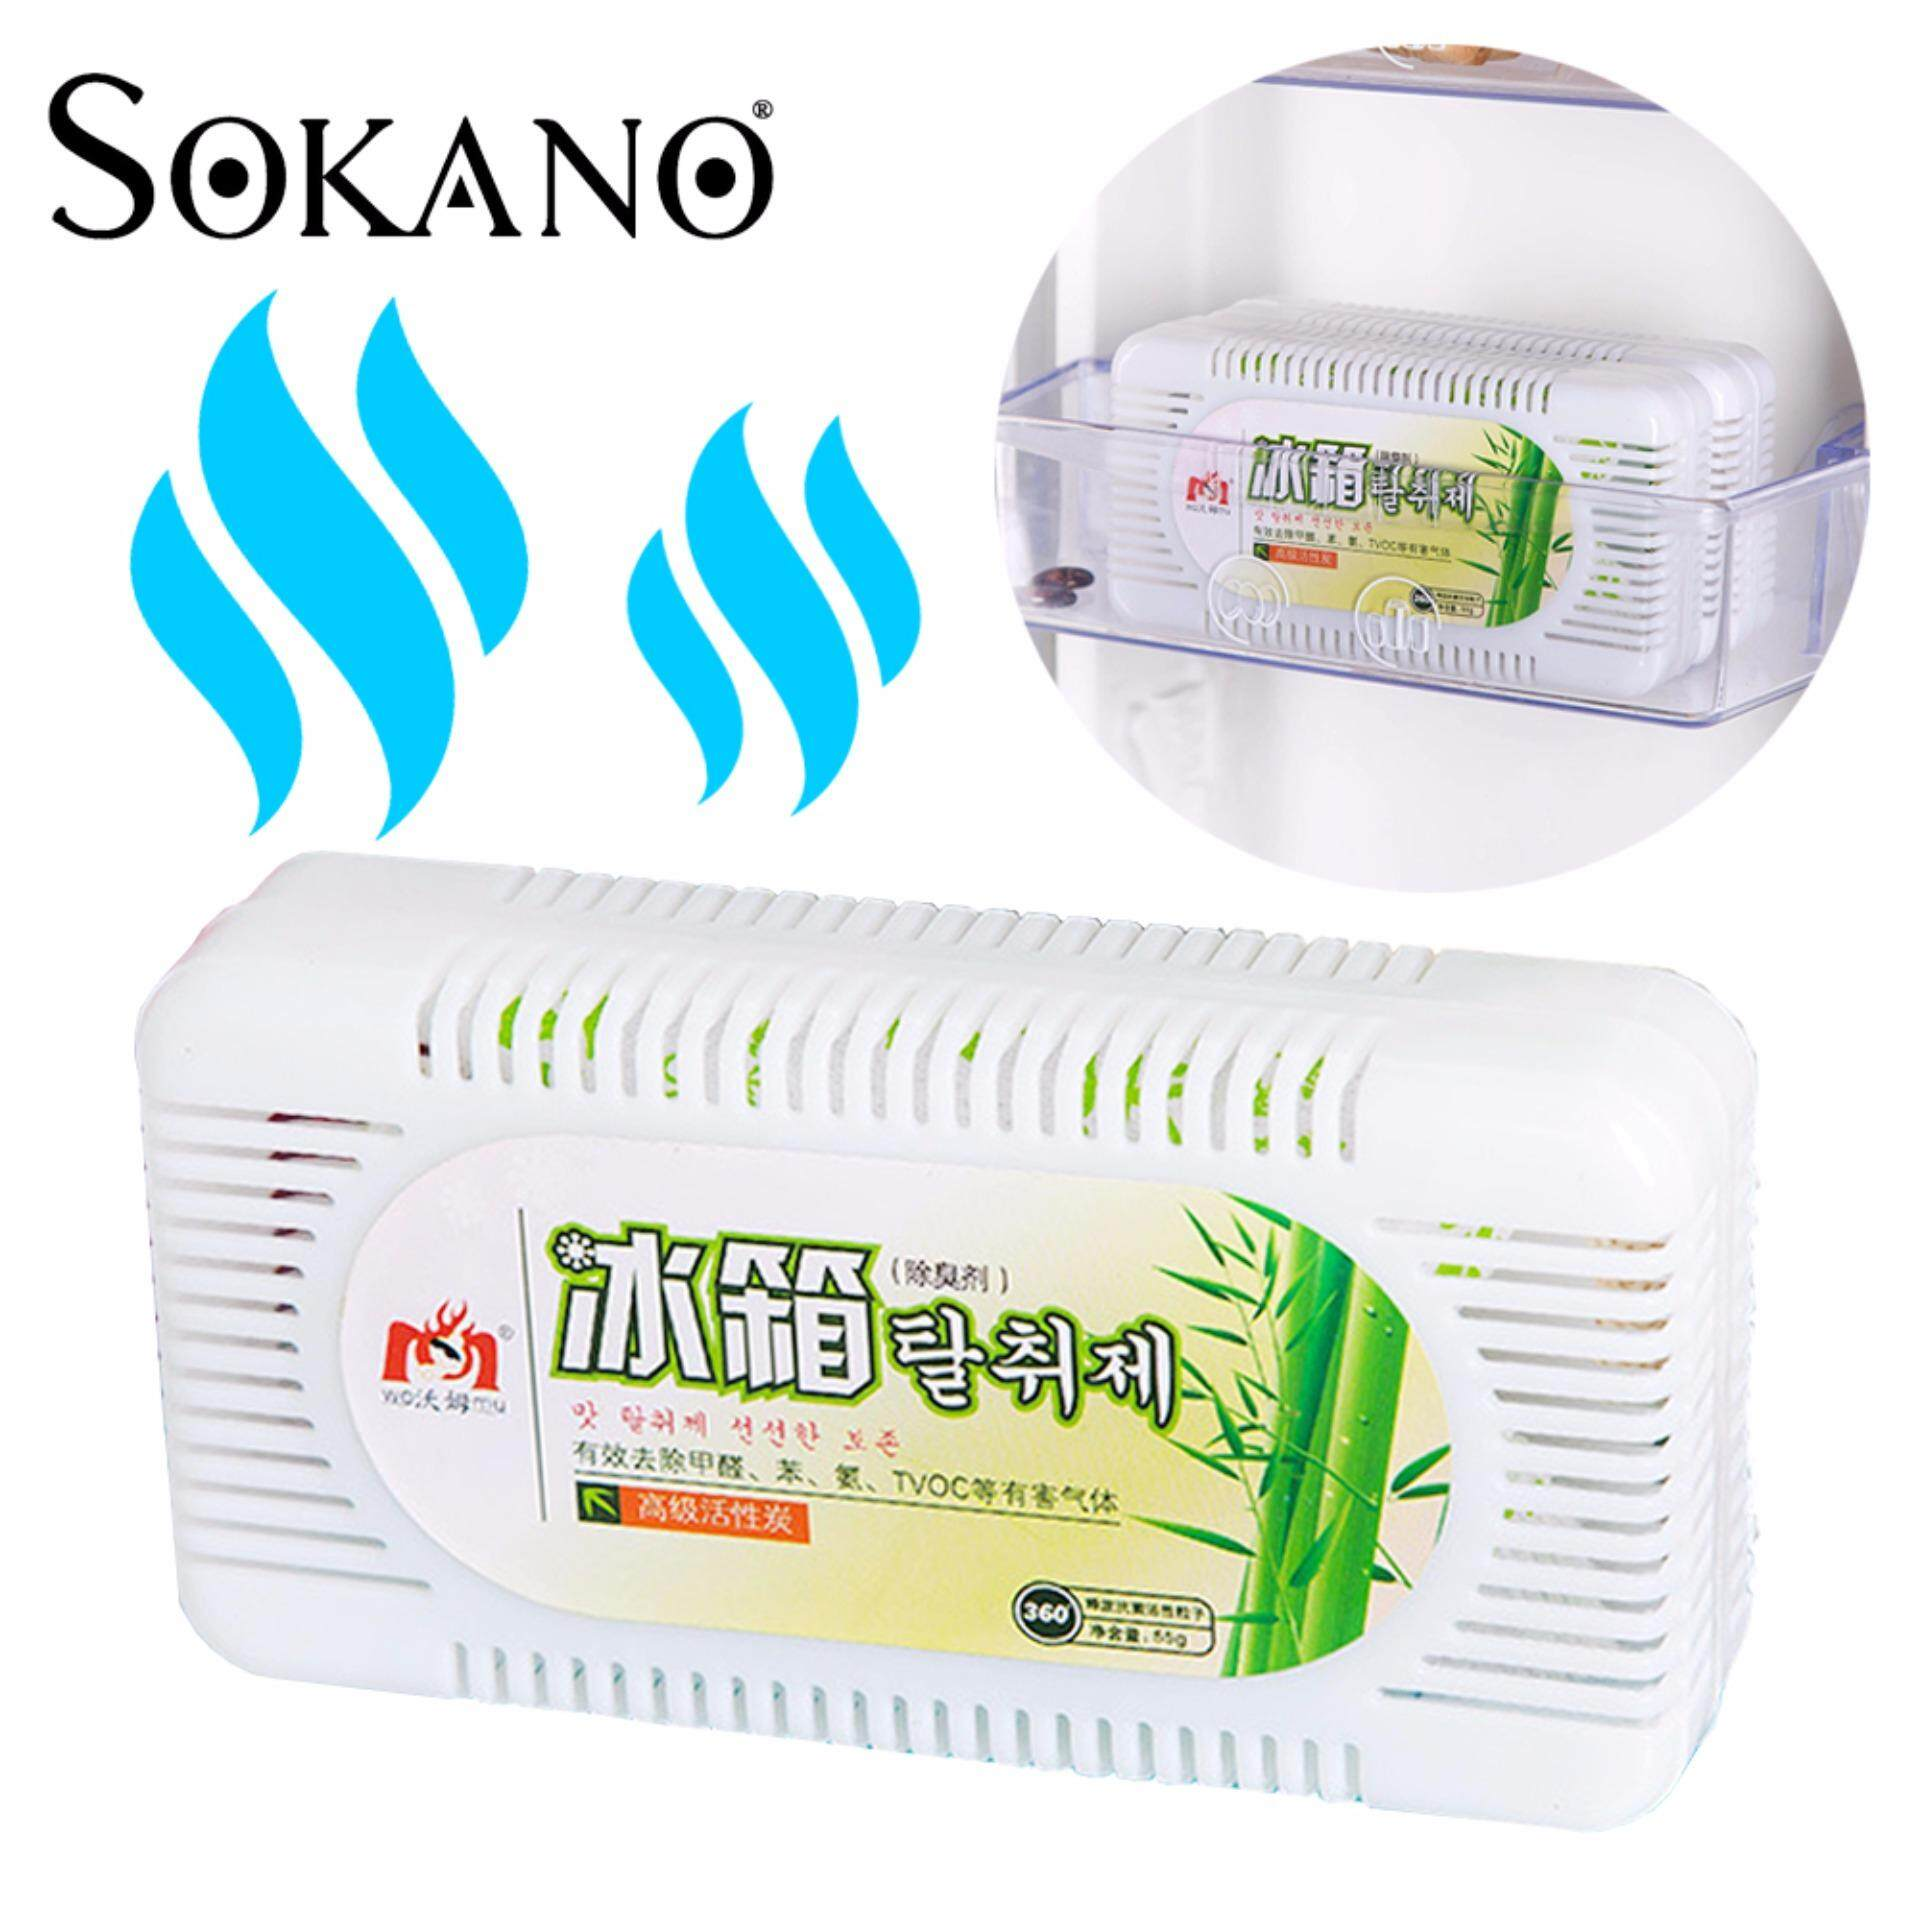 SOKANO Activated Charcoal Odor Absorber and Air Purifier for Refrigerator